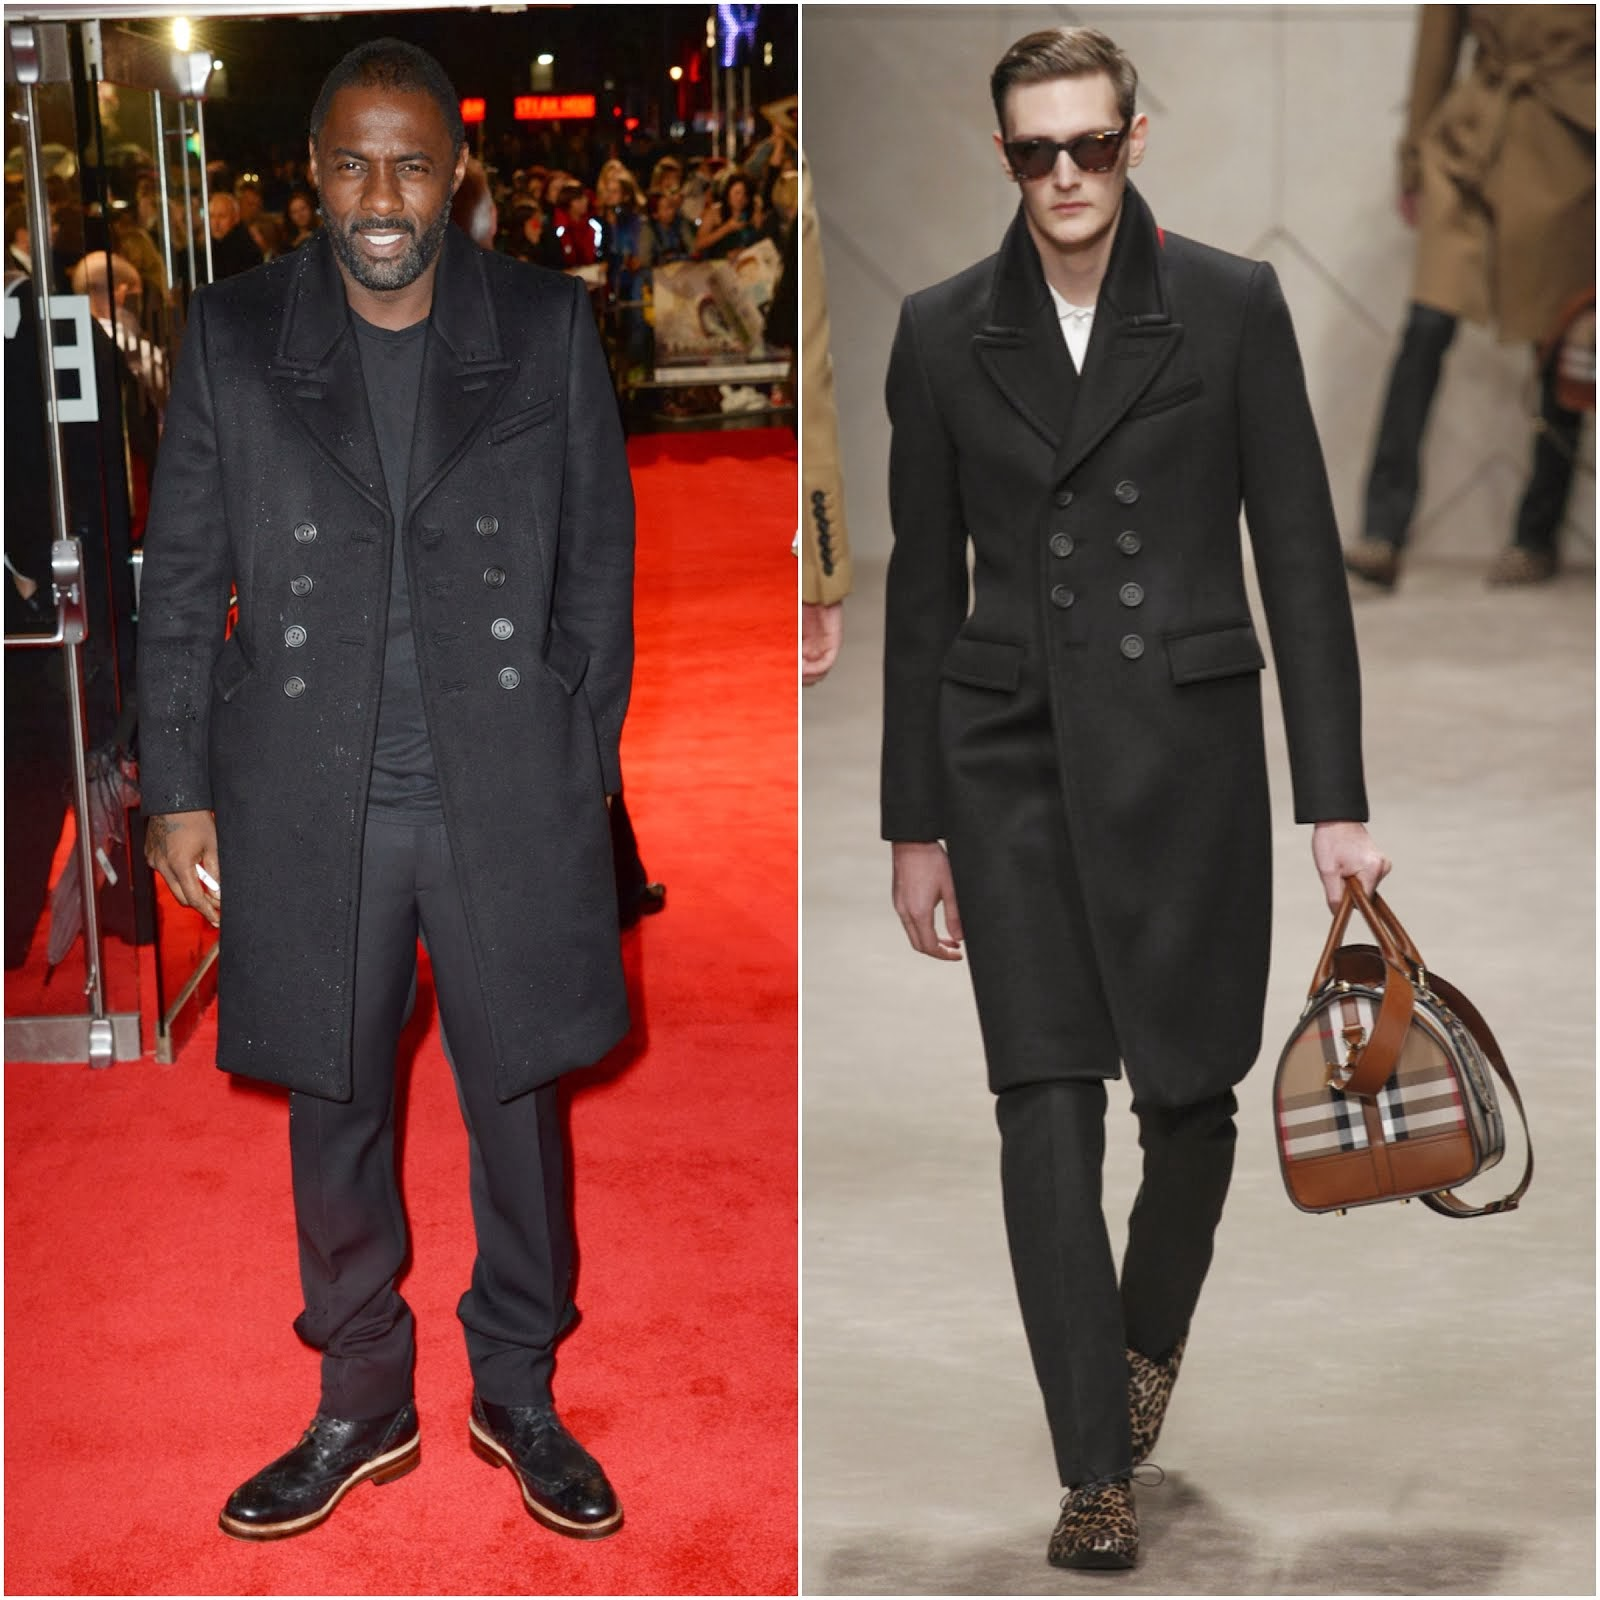 00O00 Menswear Blog: Idris Elba in Burberry - 'Thor: The Dark World' premiere, London